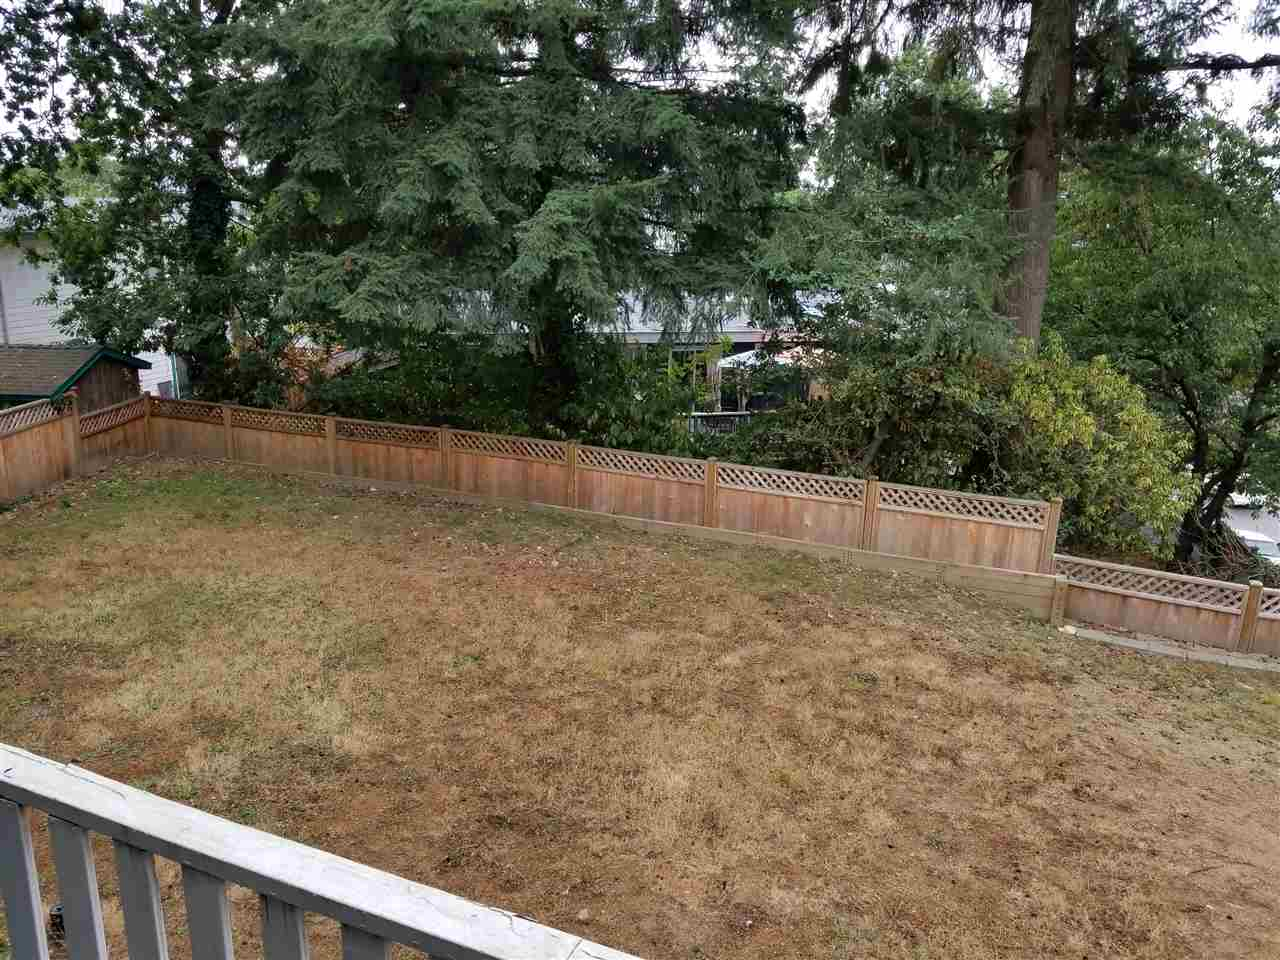 Photo 17: 2030 HILLSIDE Avenue in Coquitlam: Cape Horn House for sale : MLS® # R2205351